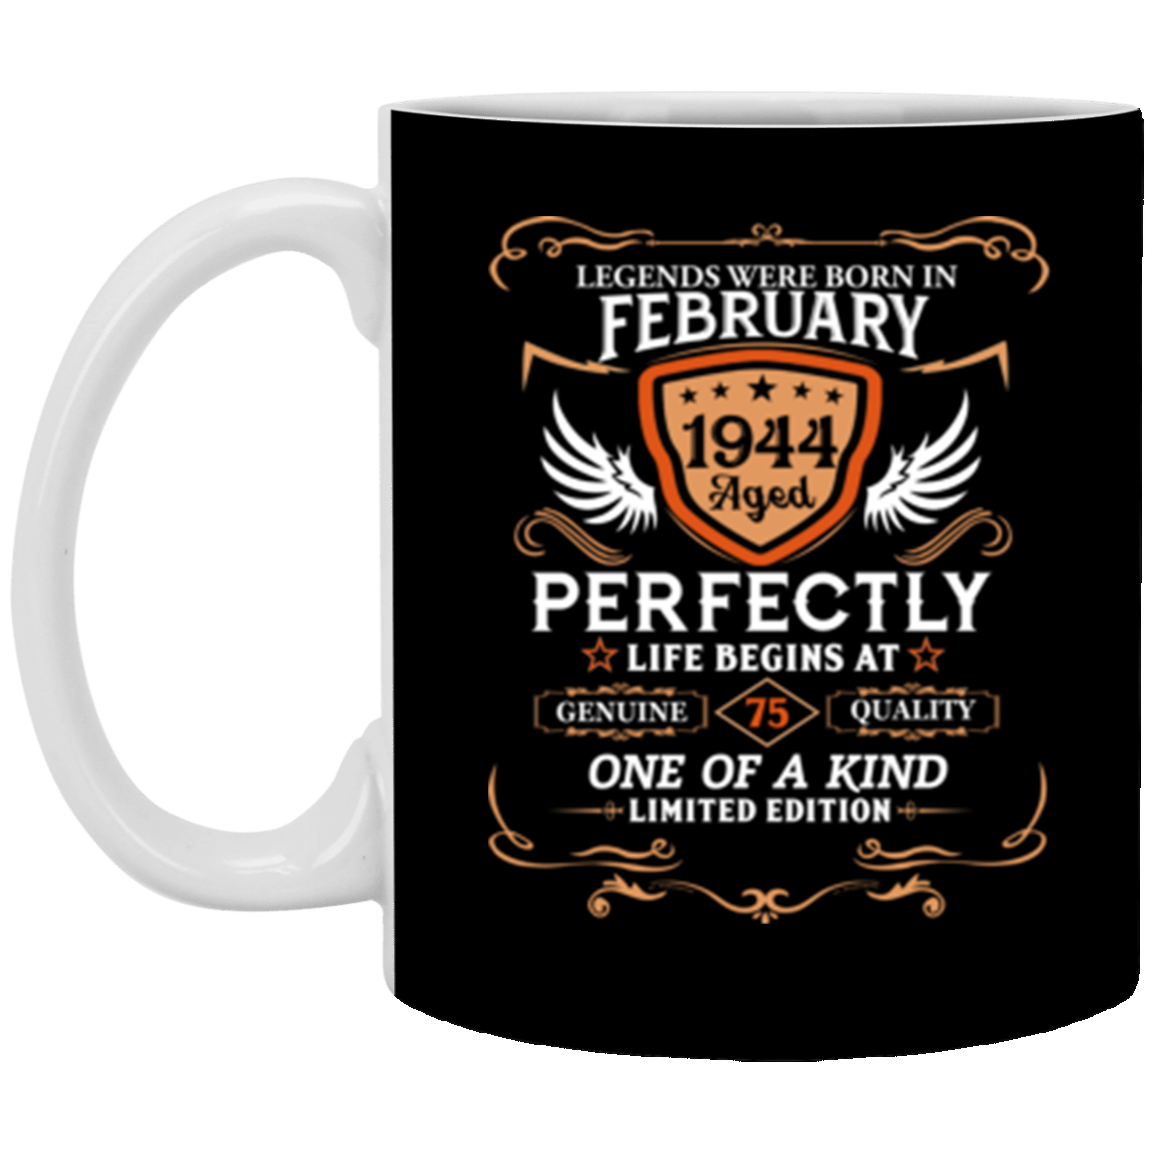 February 1944 75th Birthday Gift 75 Year Old For Men Women Mug Coffee 11 Oz